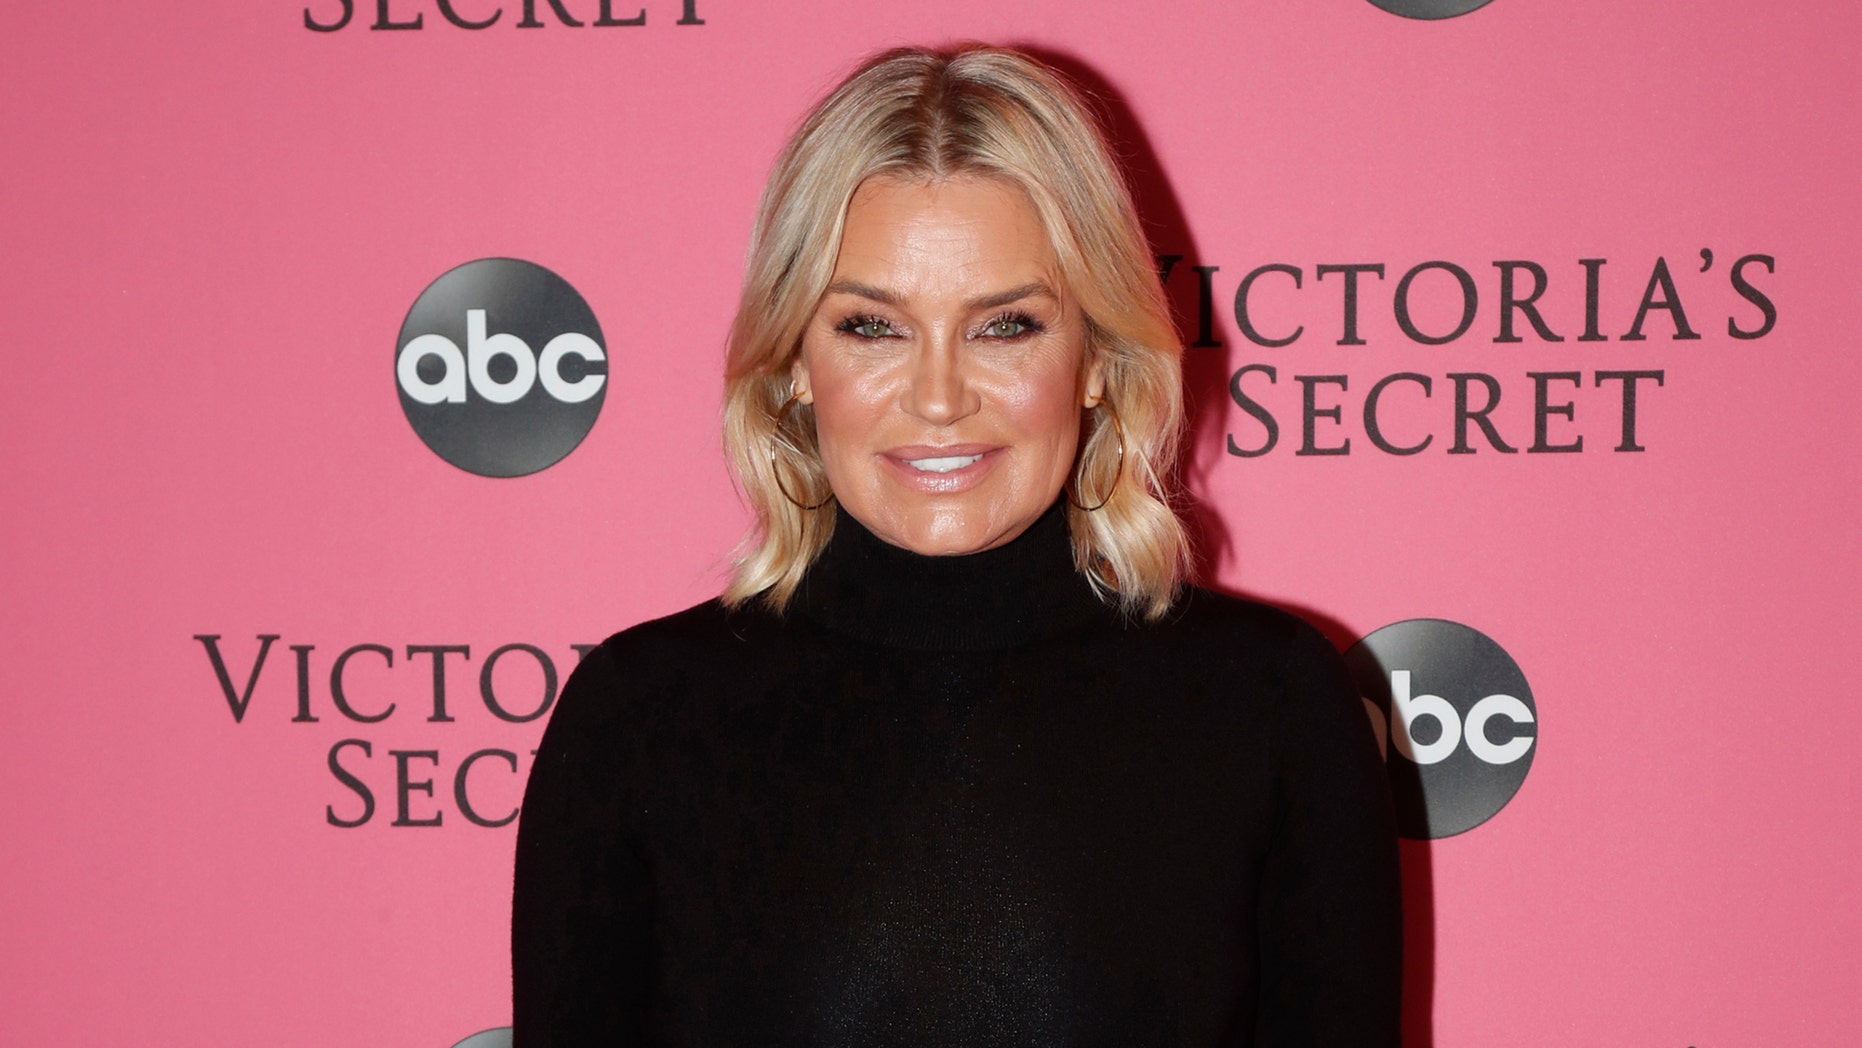 Yolanda Hadid recently shared a photo from her tropical vacation.